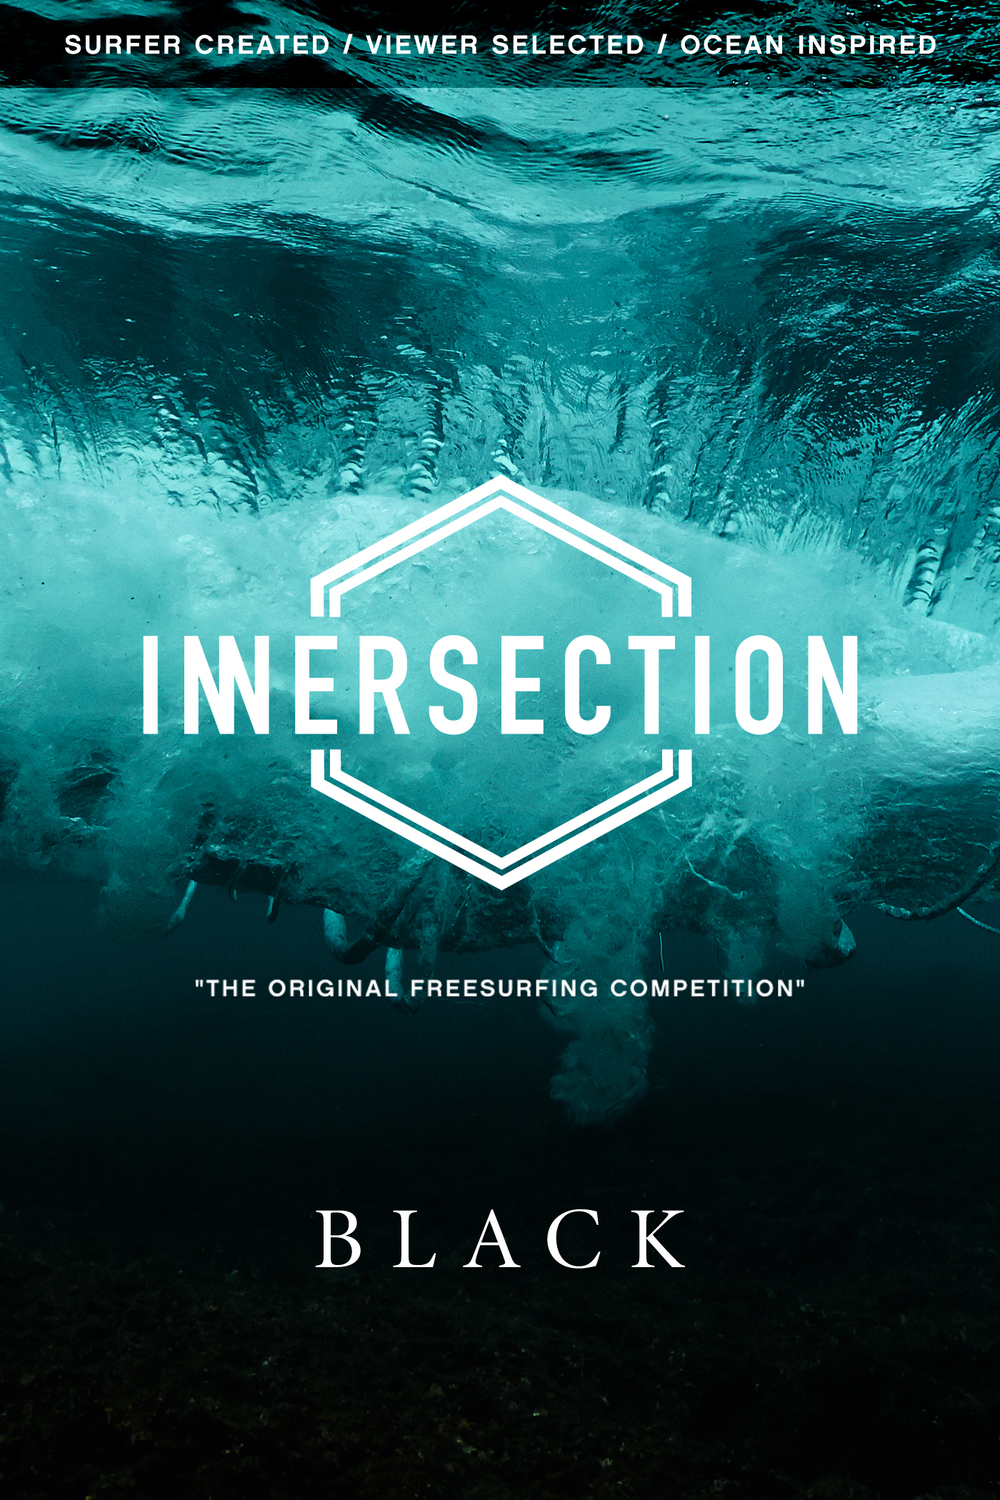 Innersection Black Taylor Steele